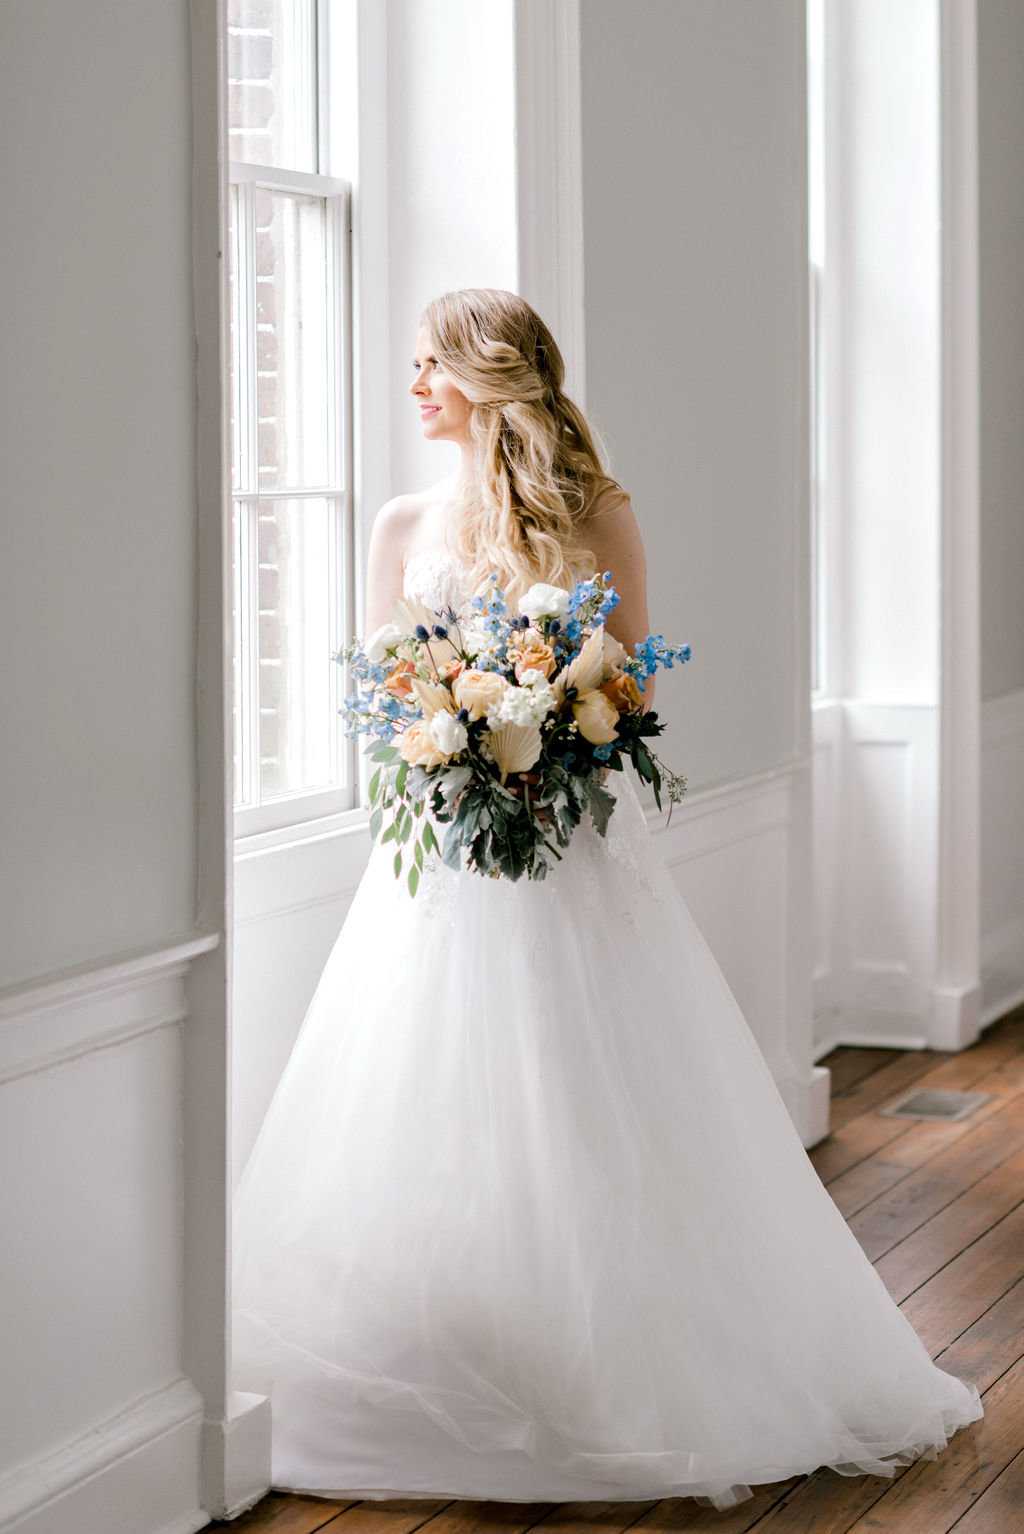 Luxury Florals Designer Bridal Gown Savannah Georgia